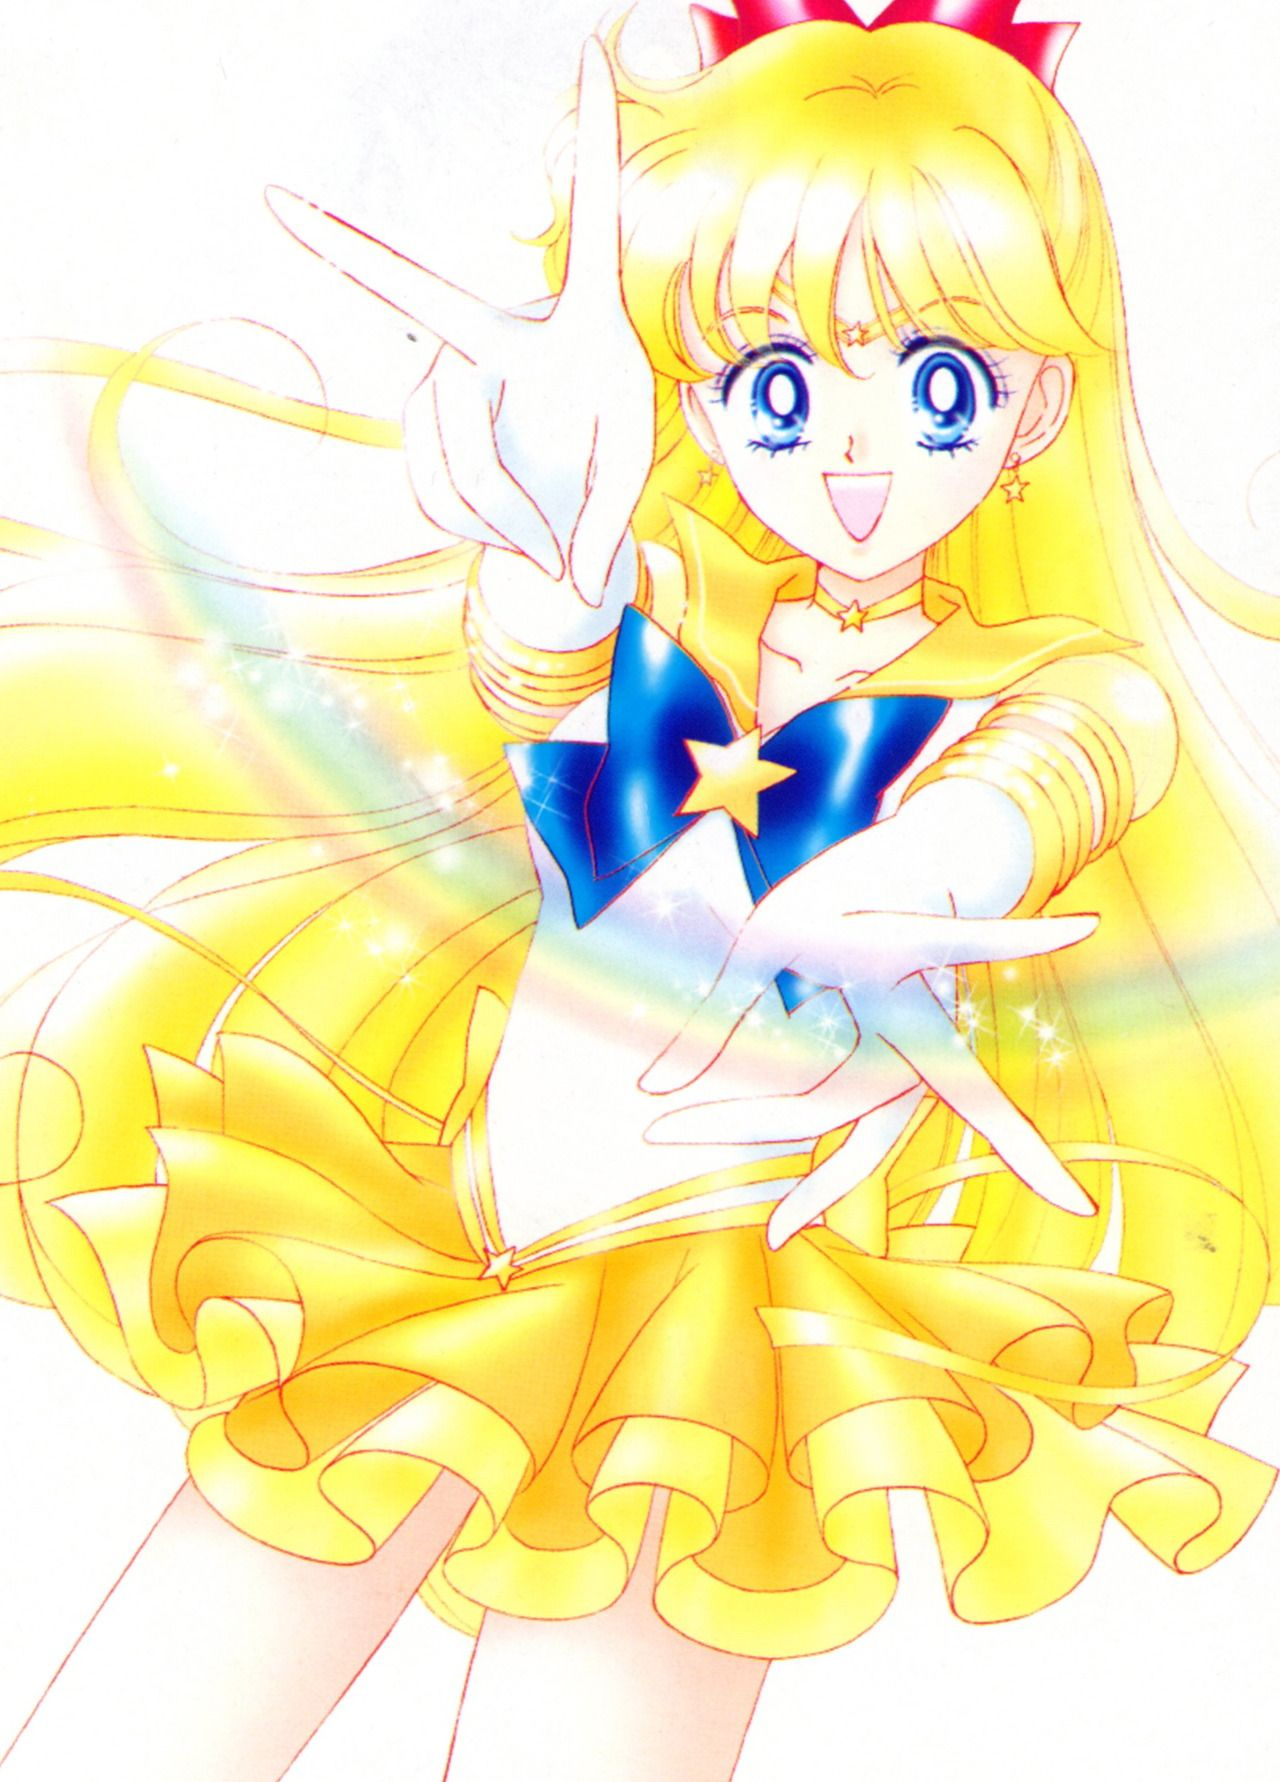 TAKEUCHI NAOKO - Sailor Moon 【Sailor Venus】